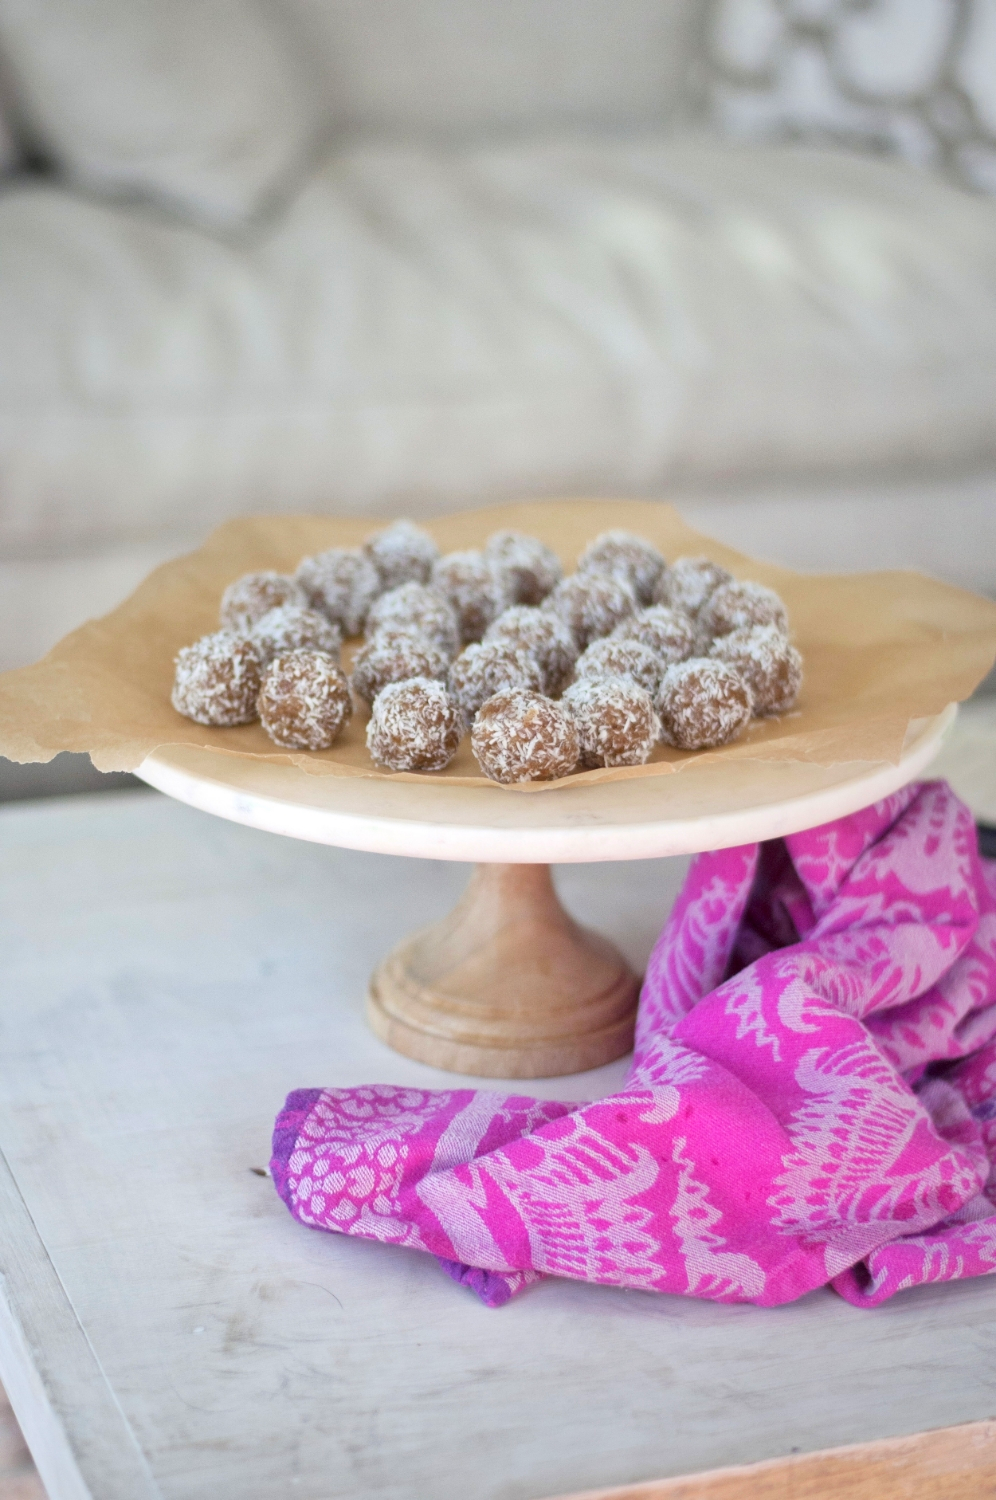 Erin Stanczyk | Lifestyle Design | eat.move.rest. | ERIN'S CHEWY-GOOEY DATE ENERGY BITES